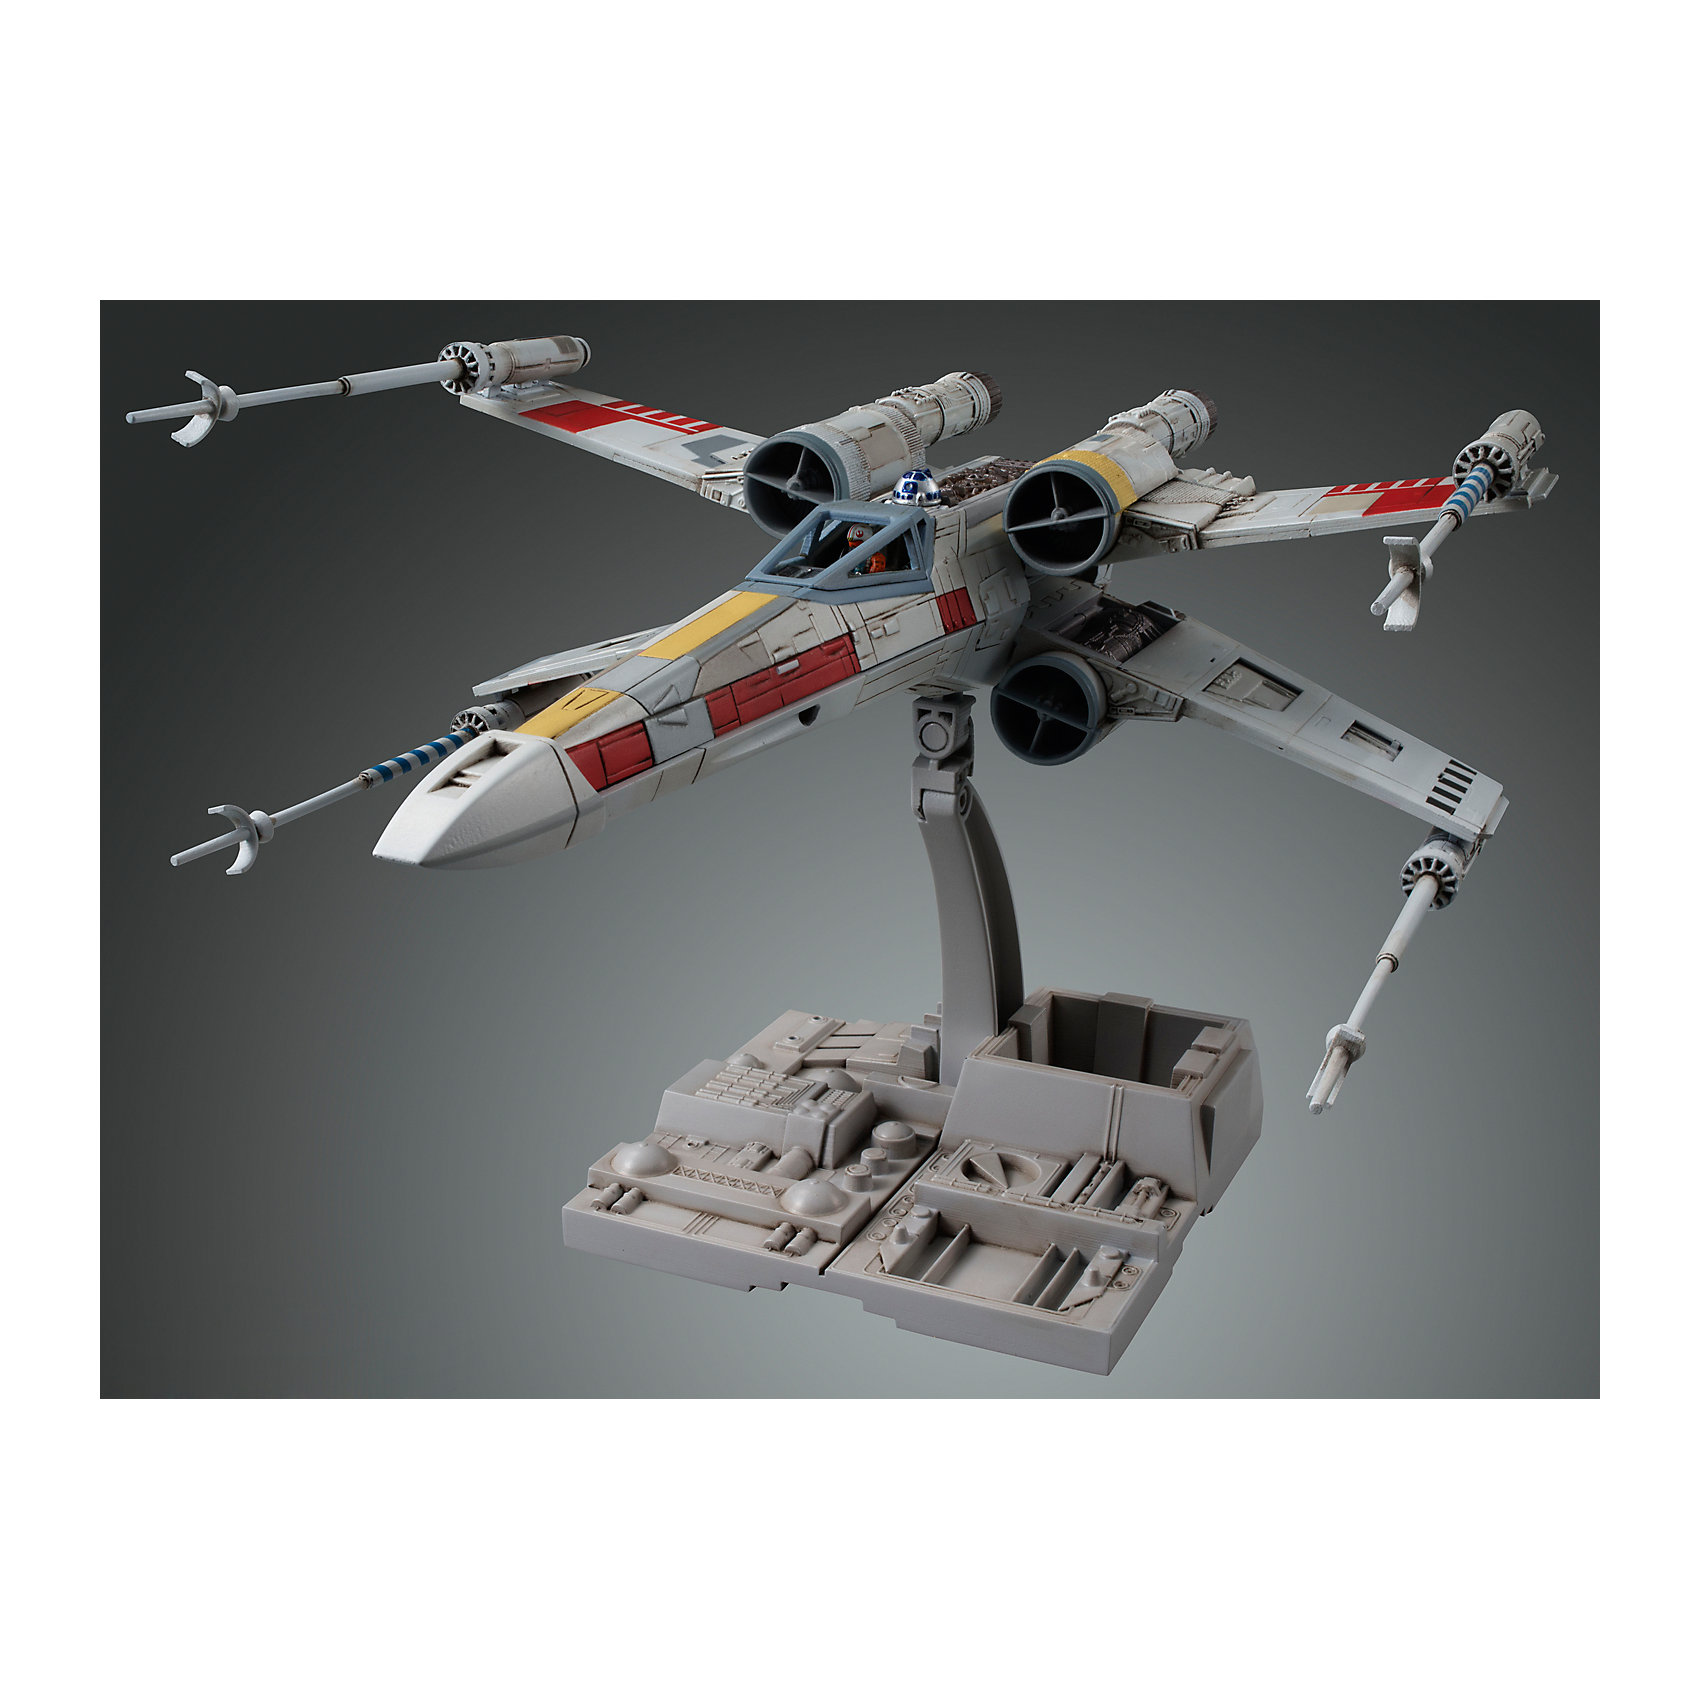 BANDAI Сборная модель Истребитель X-Wing Fighter 1/72, Звездные Войны lepin 05040 y wing attack fighter 10134 star series wars model building block brick kits compatible assembling gift toys